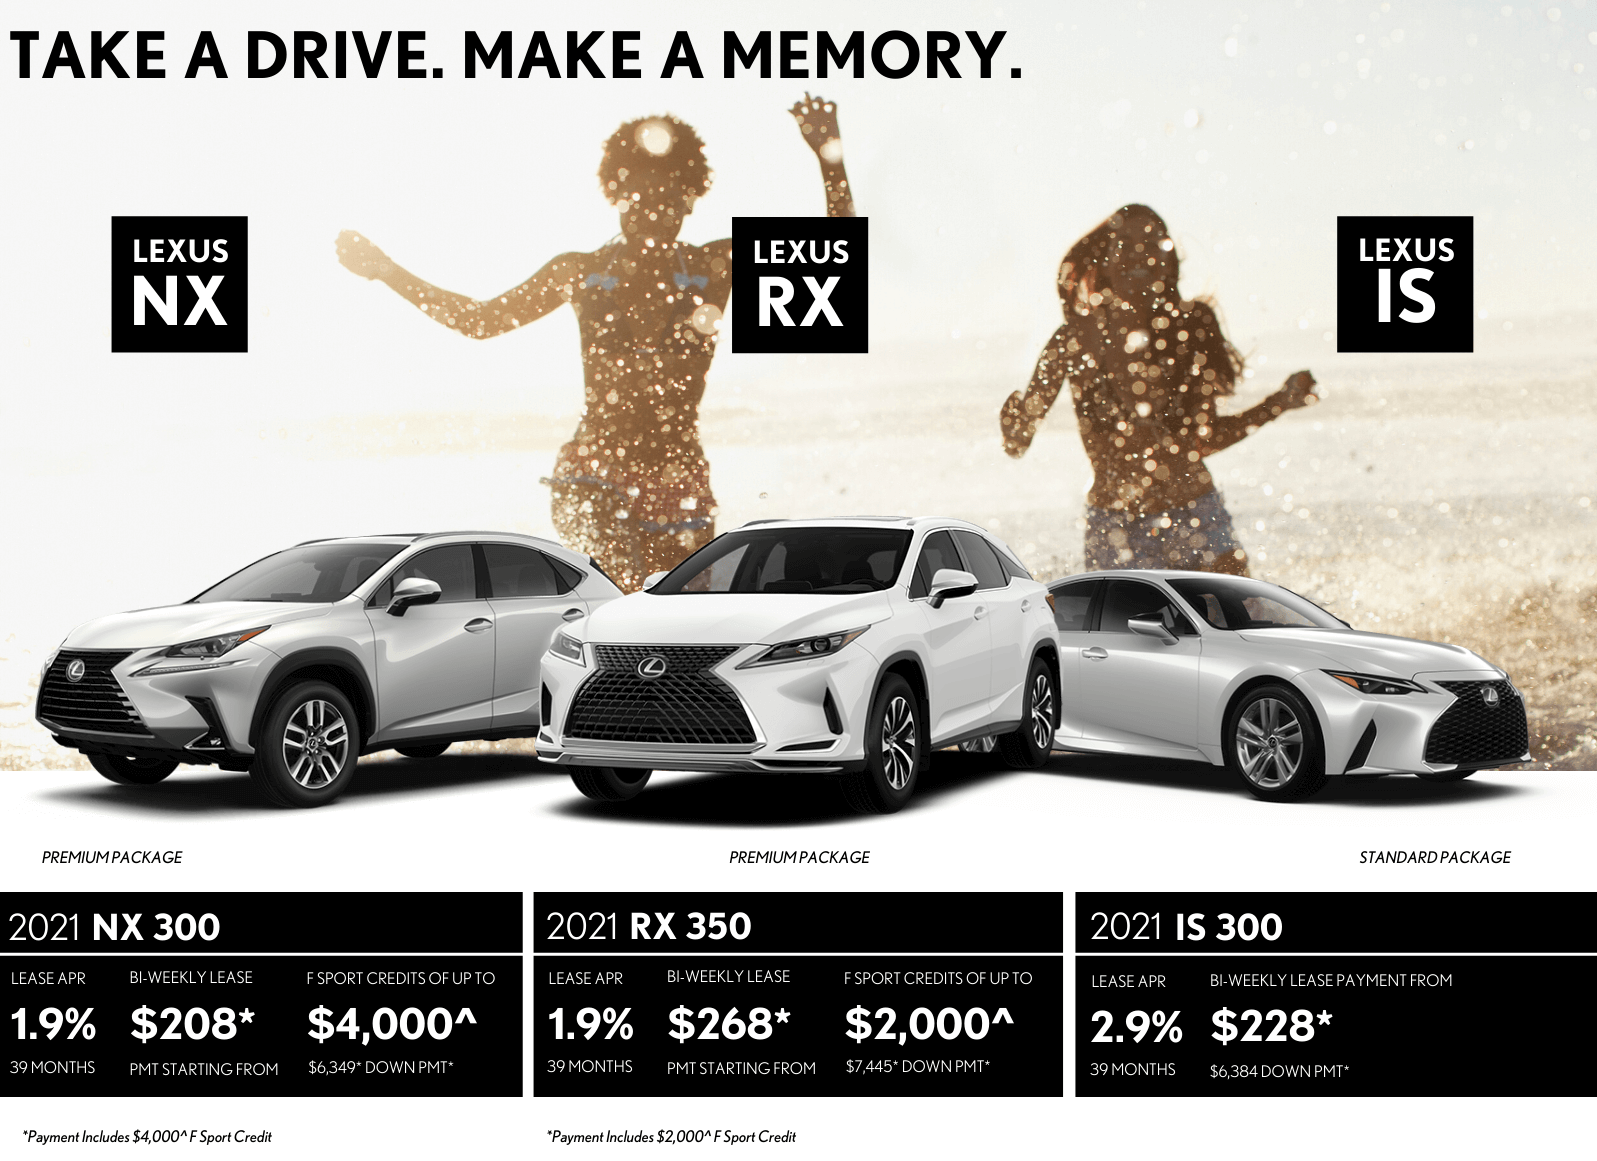 Take a Drive. Make A Memory. Delivery Credit Of Up to $4,000 On Select Lexus Models